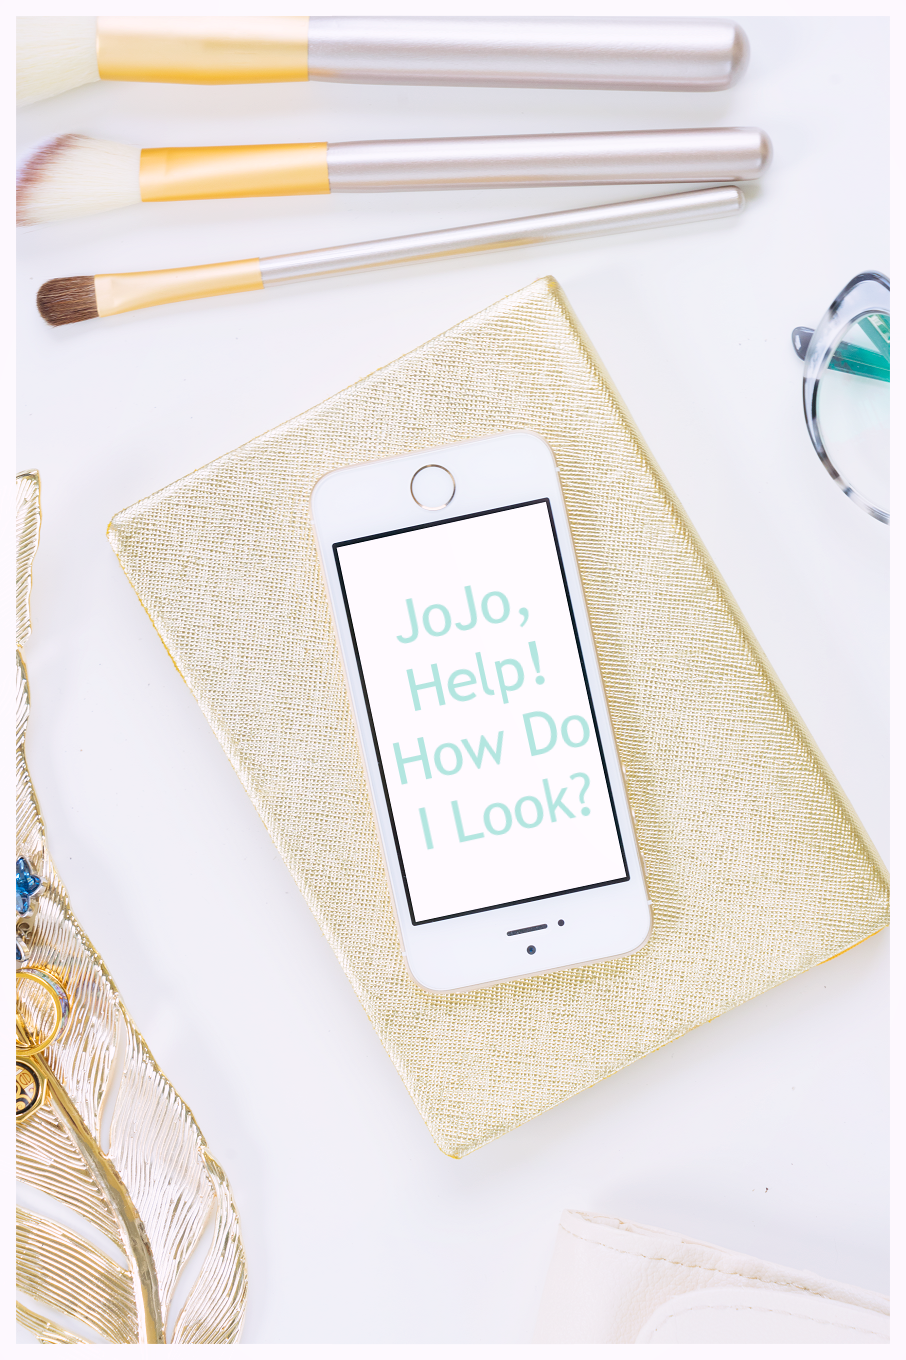 On-Demand Styling advice from a pro via Your Mobile Device